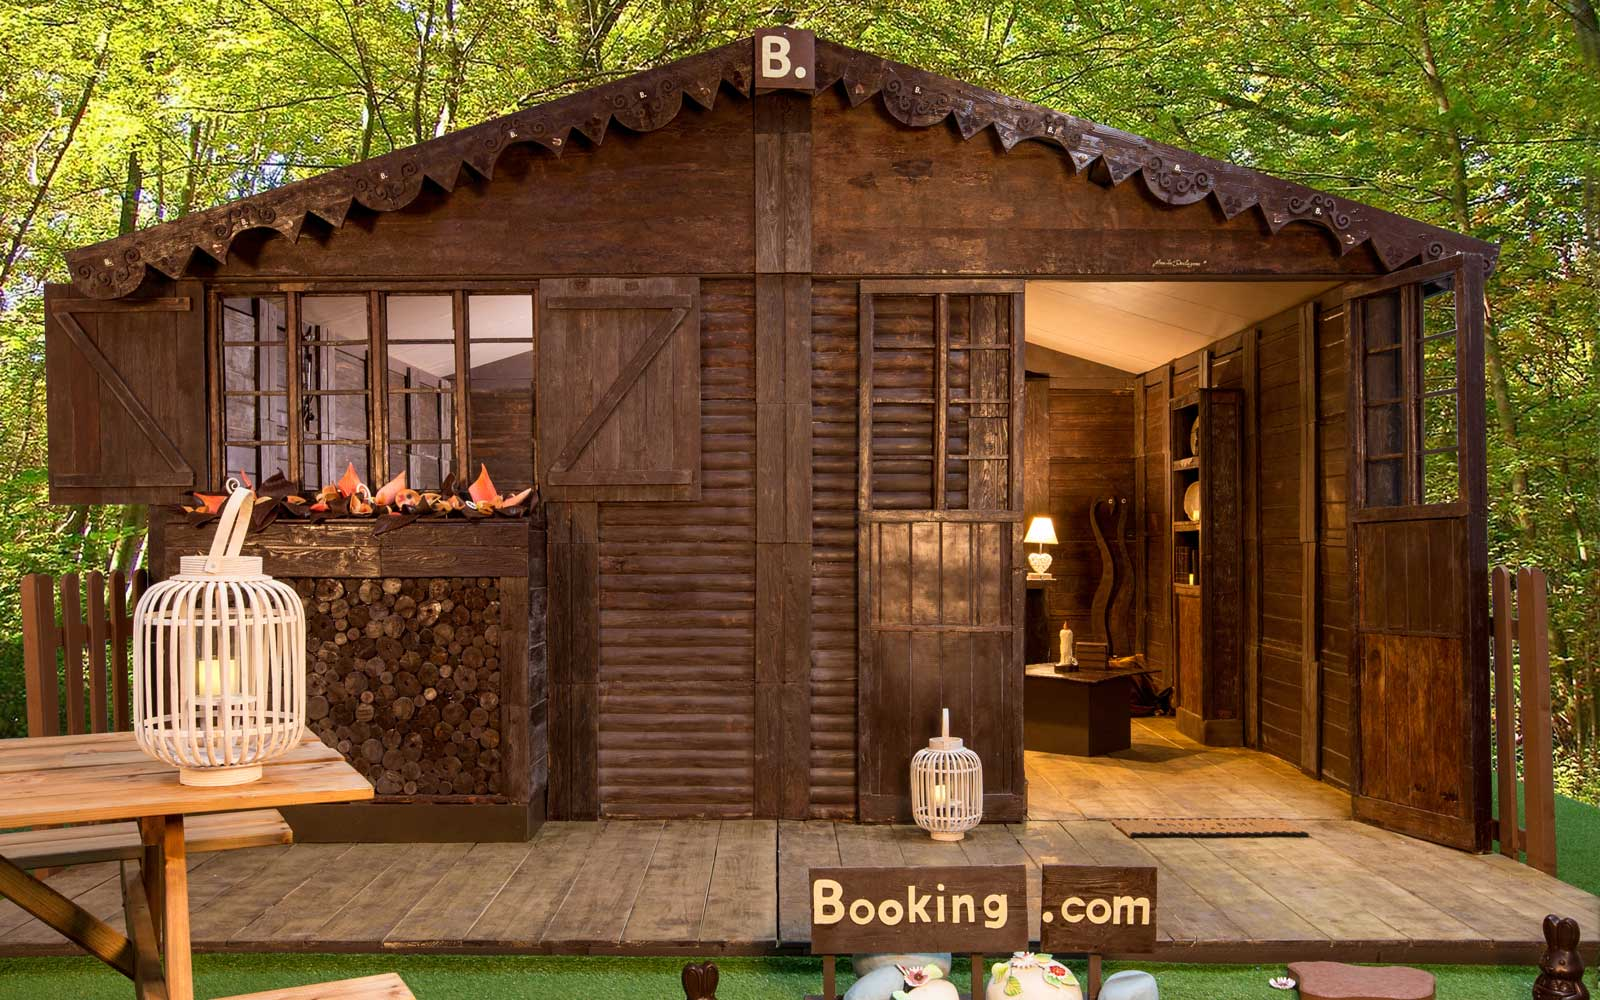 You Can Rent This Cottage Made Entirely of Chocolate